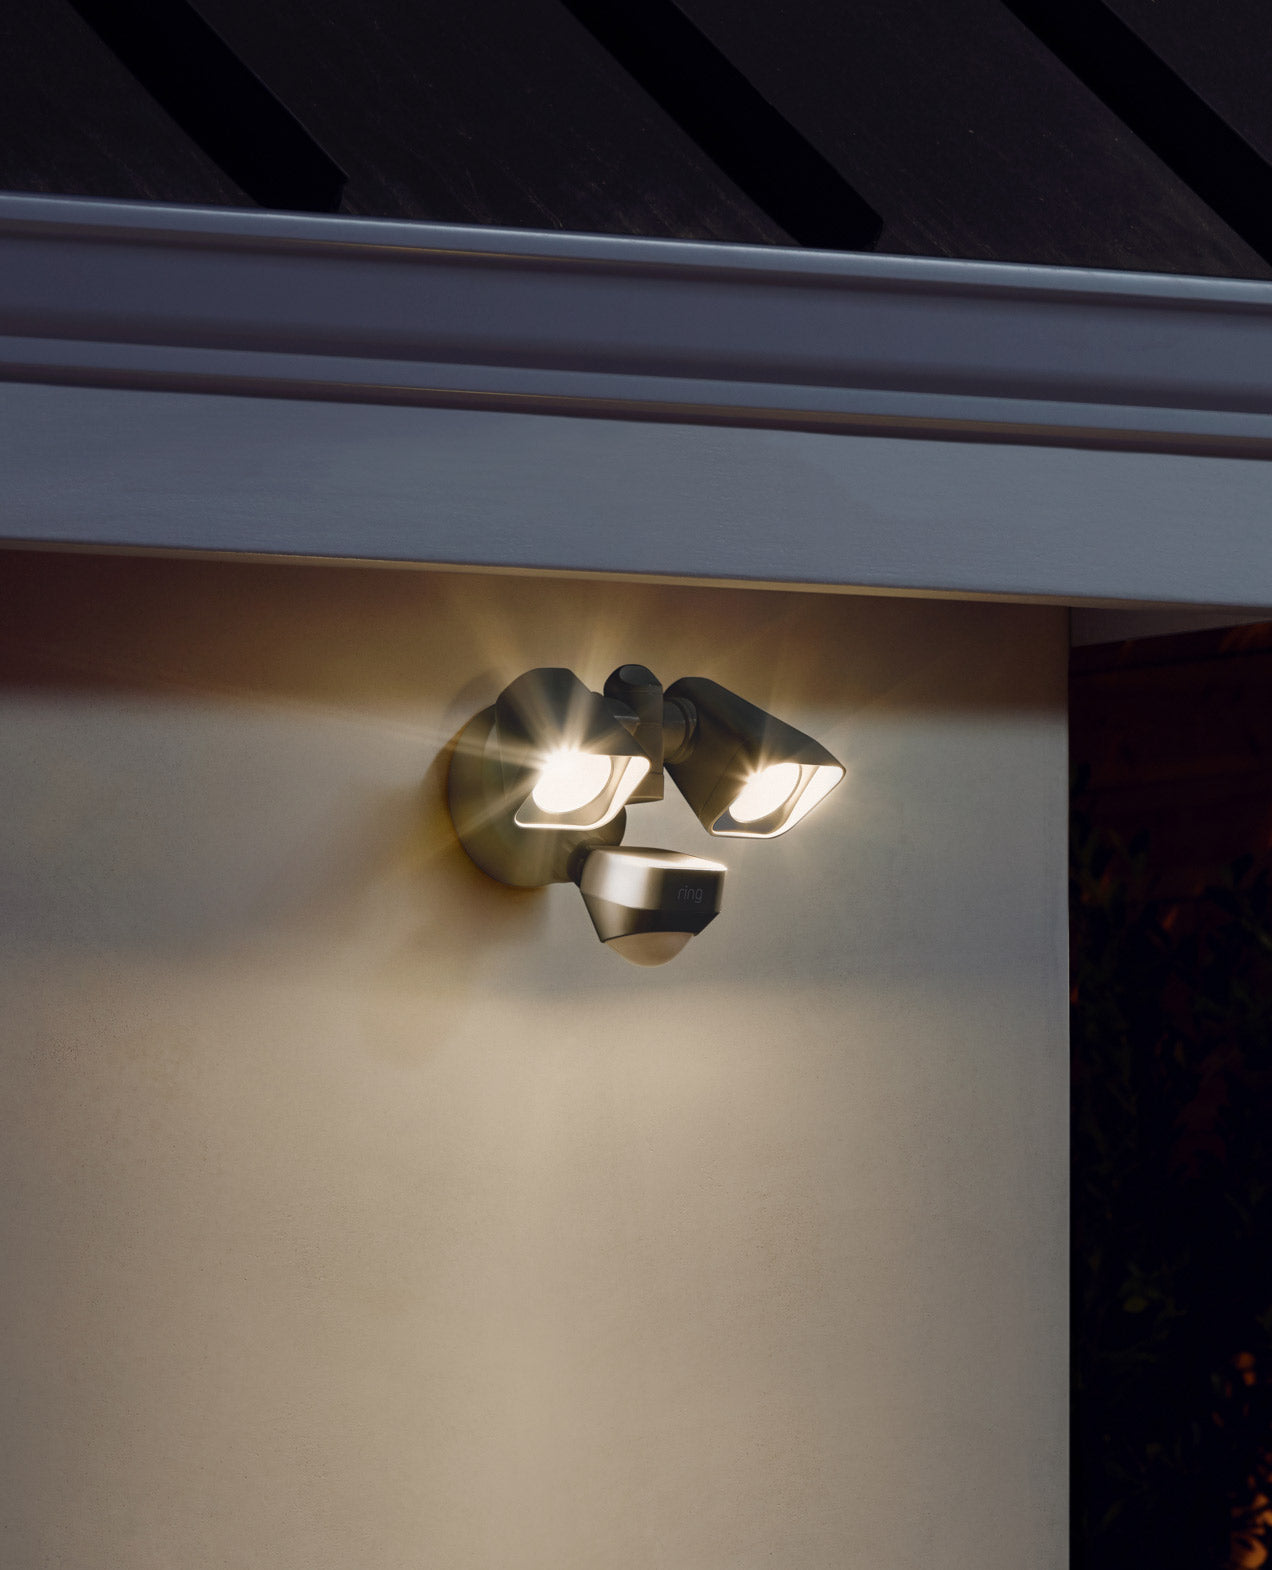 Security lighting above the rest.